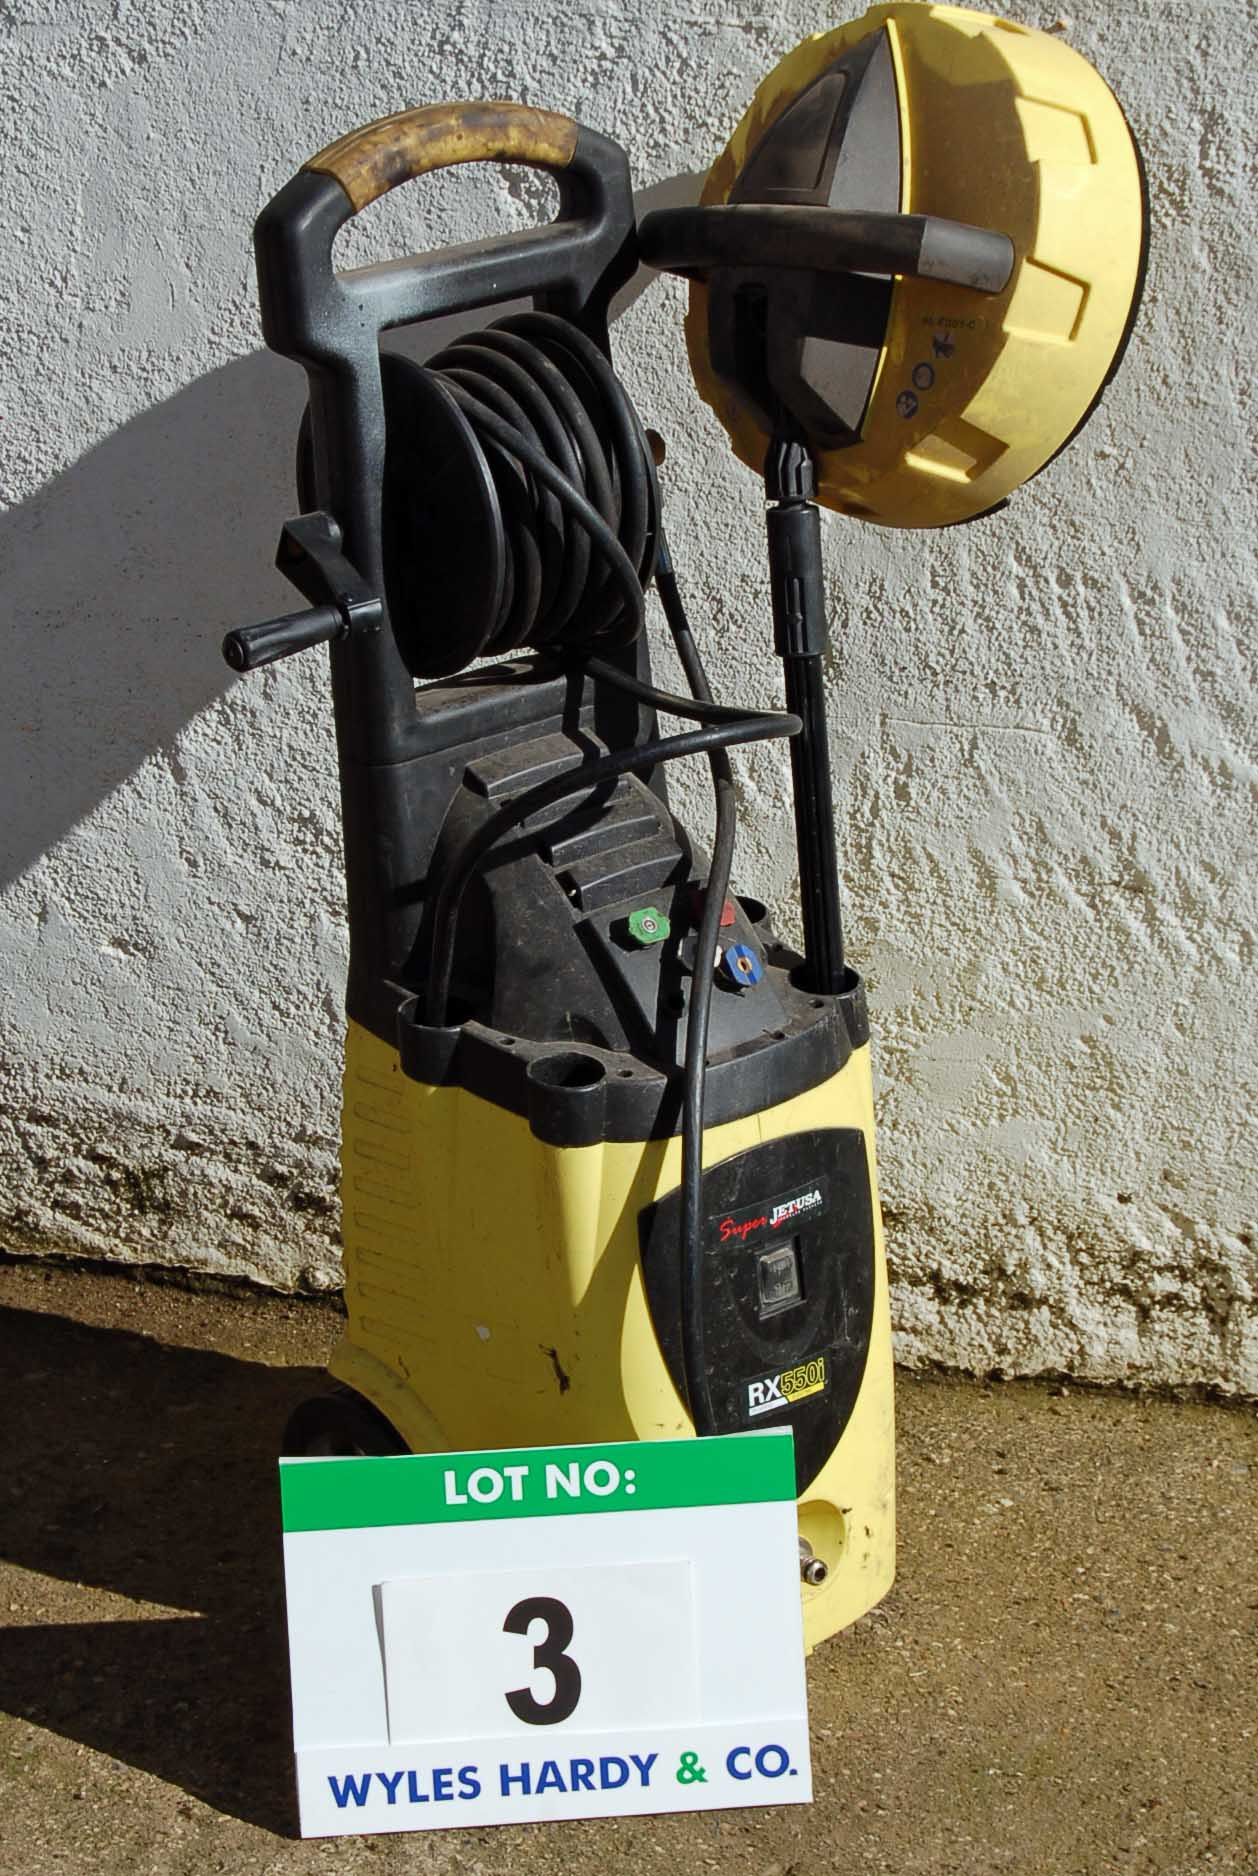 Lot 3 - SUPERJET USA RX550i Mobile Pressure Washer (240V) Note: Lance Missing